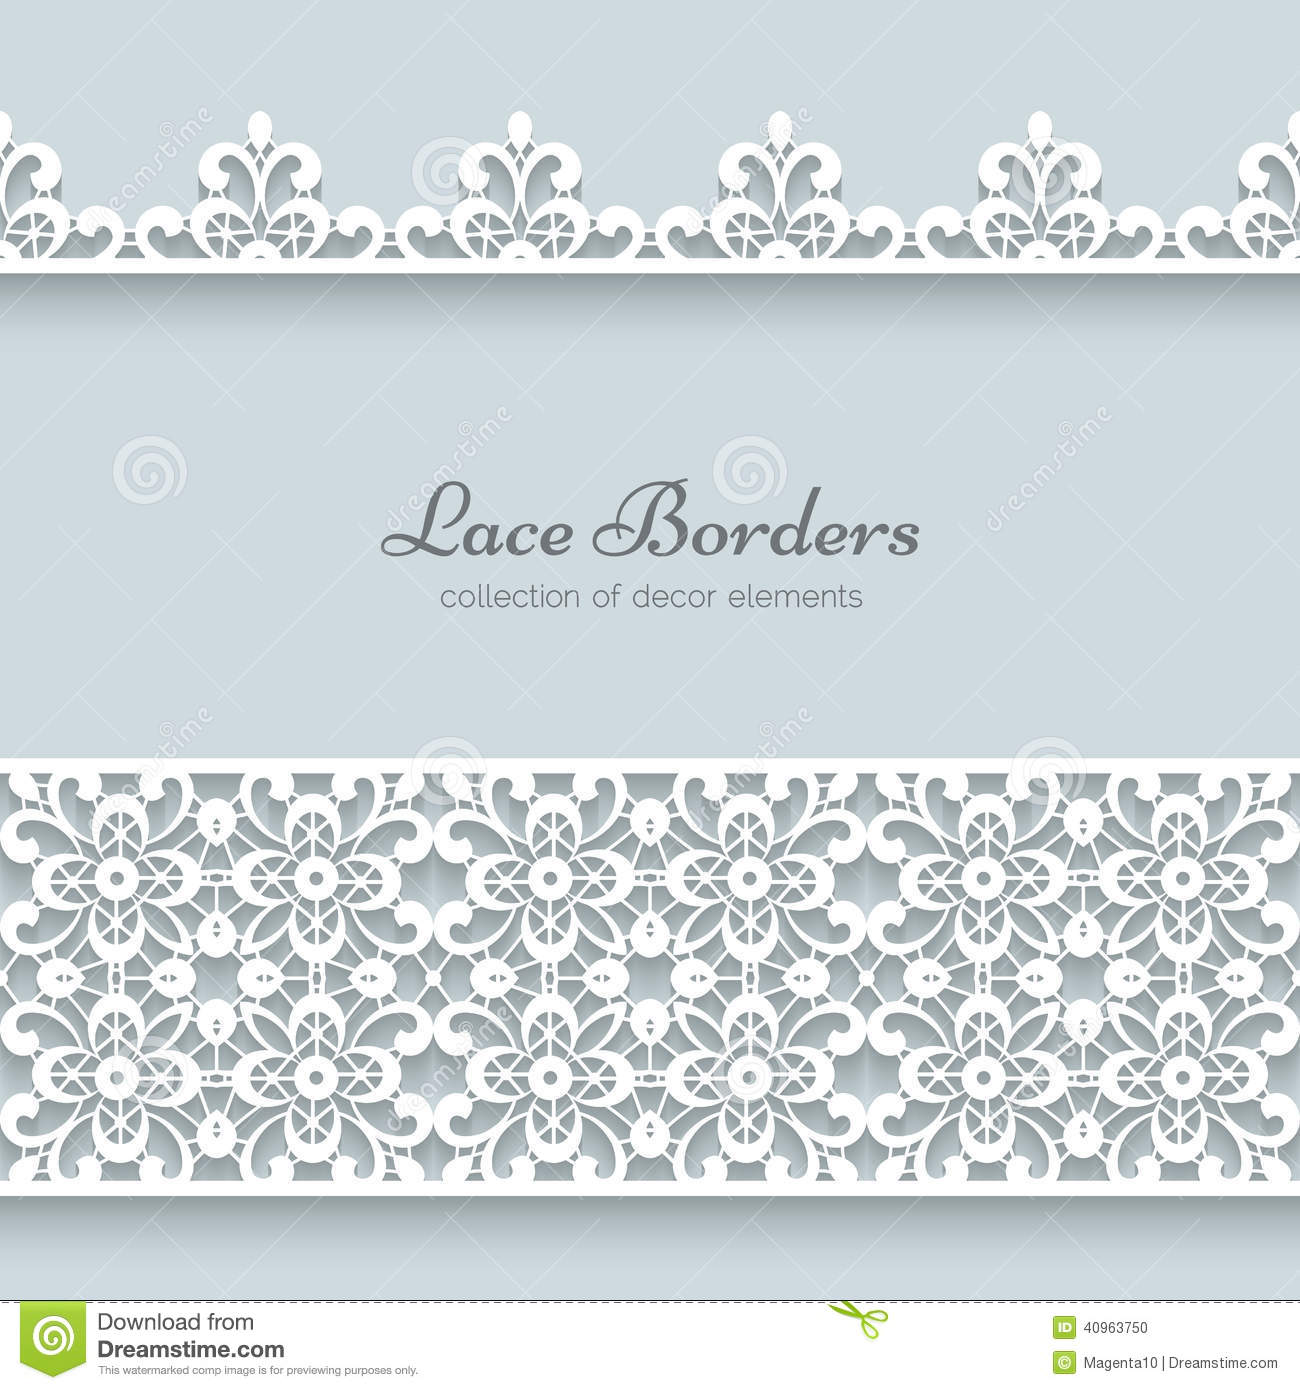 Lace borders with shadows, ornamental paper lines.